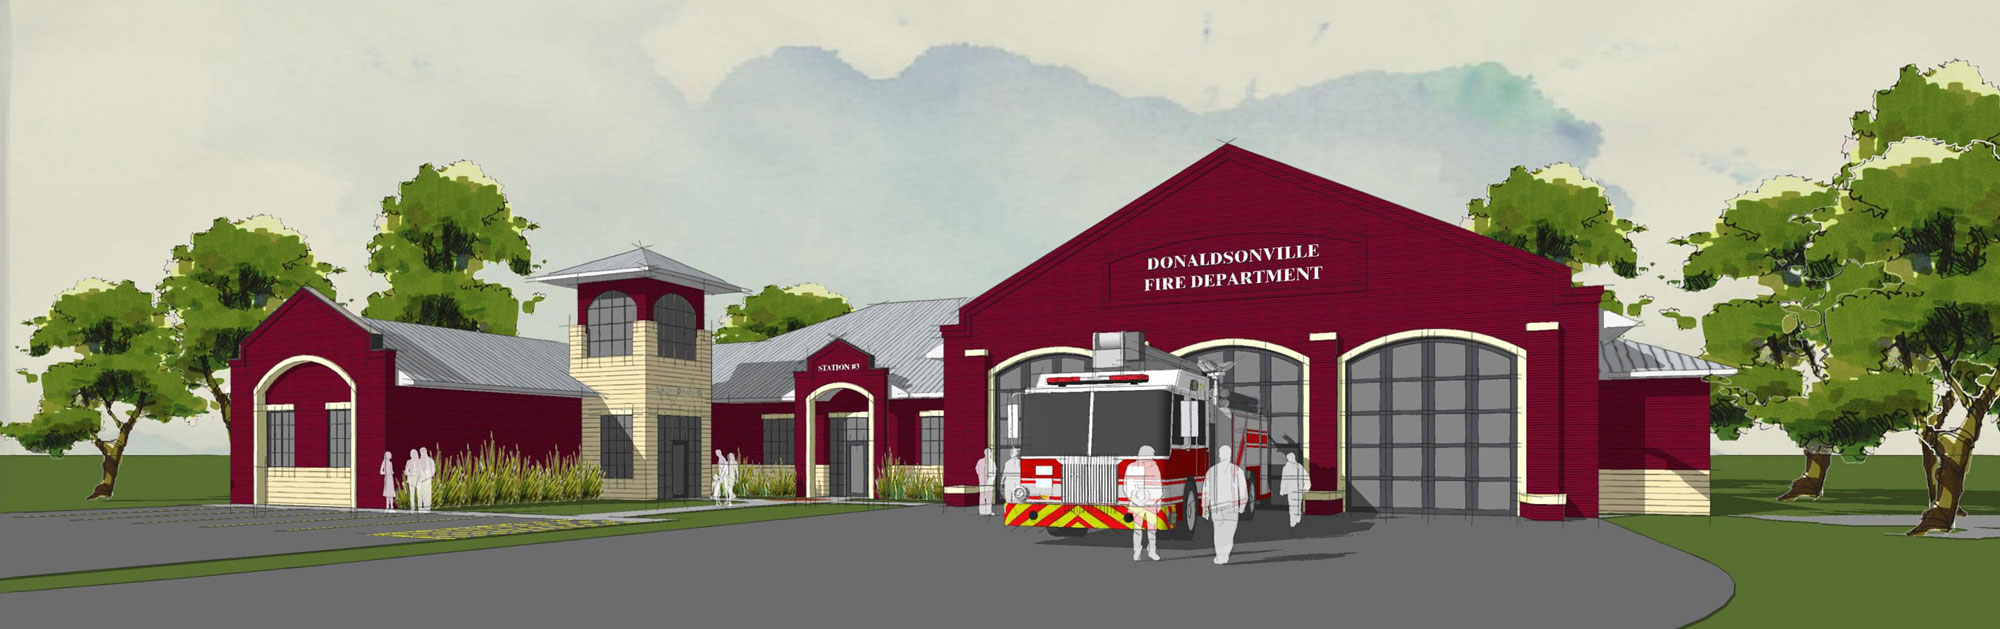 Exterior rendering of Donaldsonville Fire Station